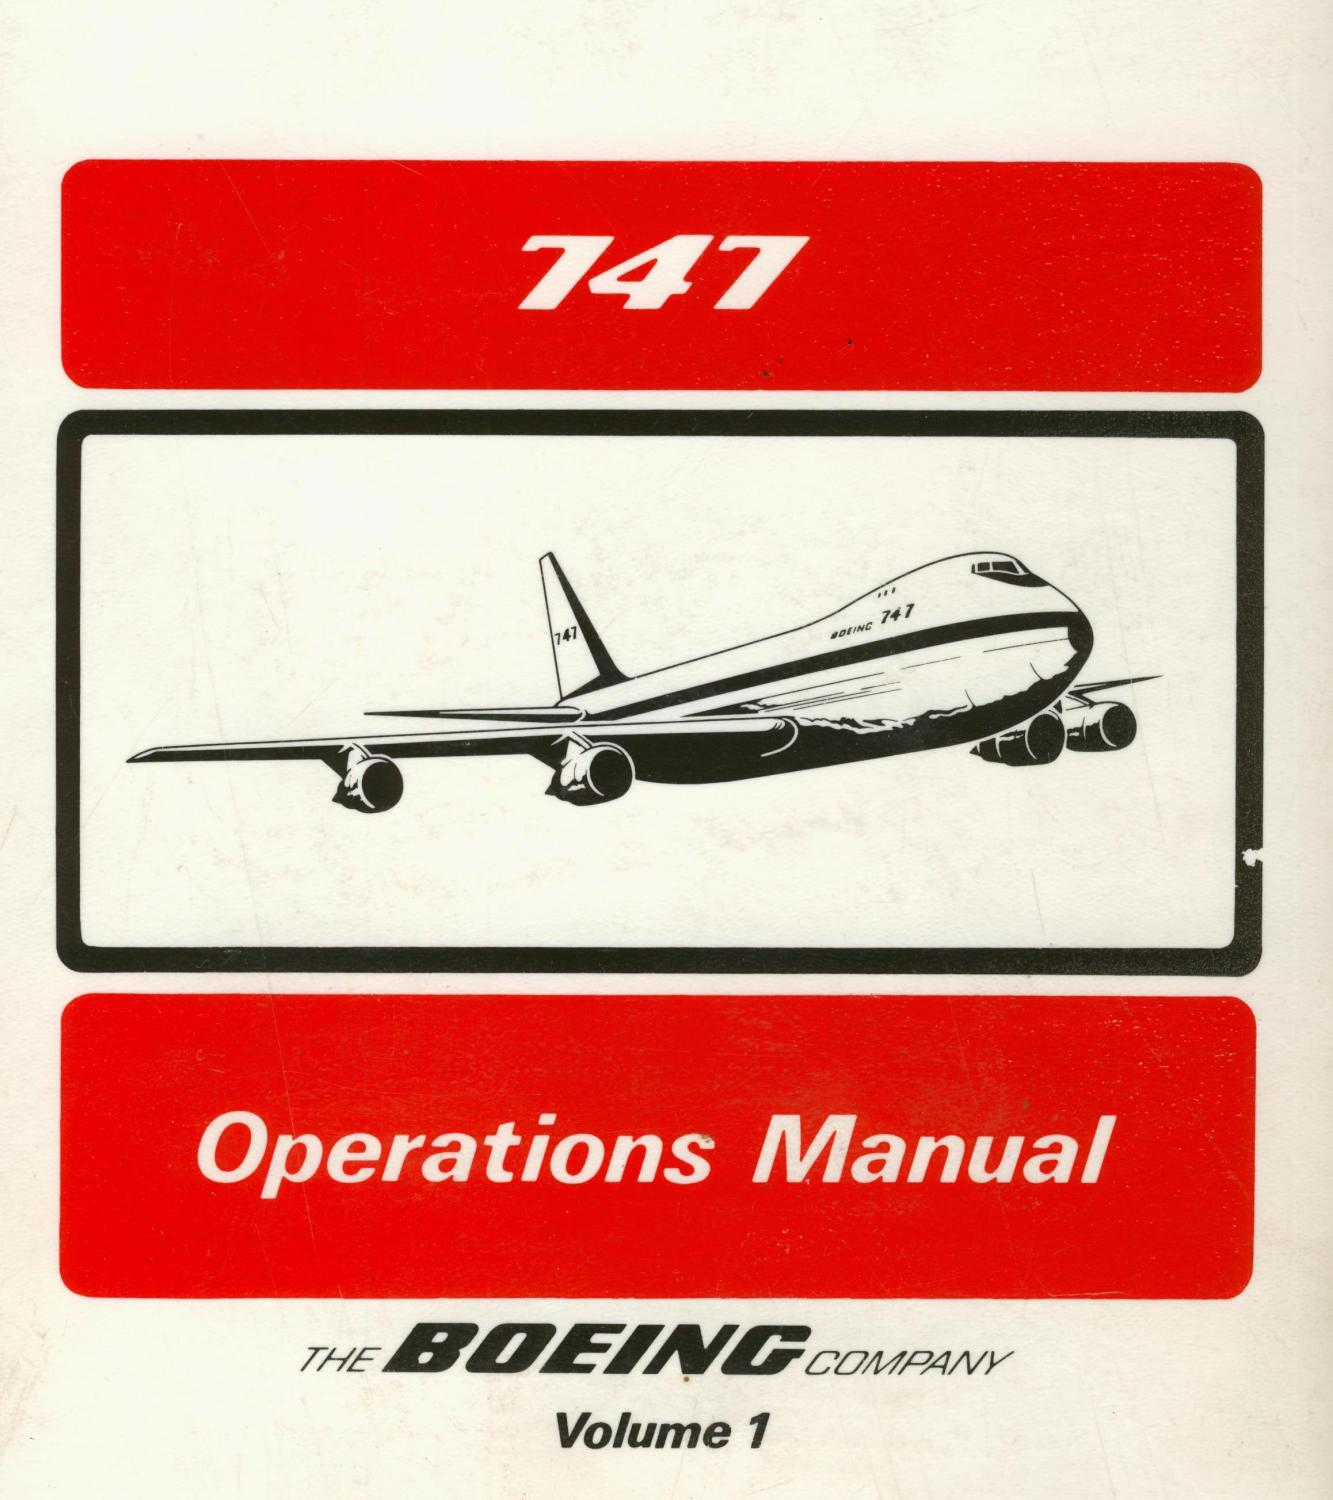 747 operations manual volume 1 by boeing aircraft company boeing rh abebooks co uk Boeing 747 Seating Chart flight crew operations manual boeing 747